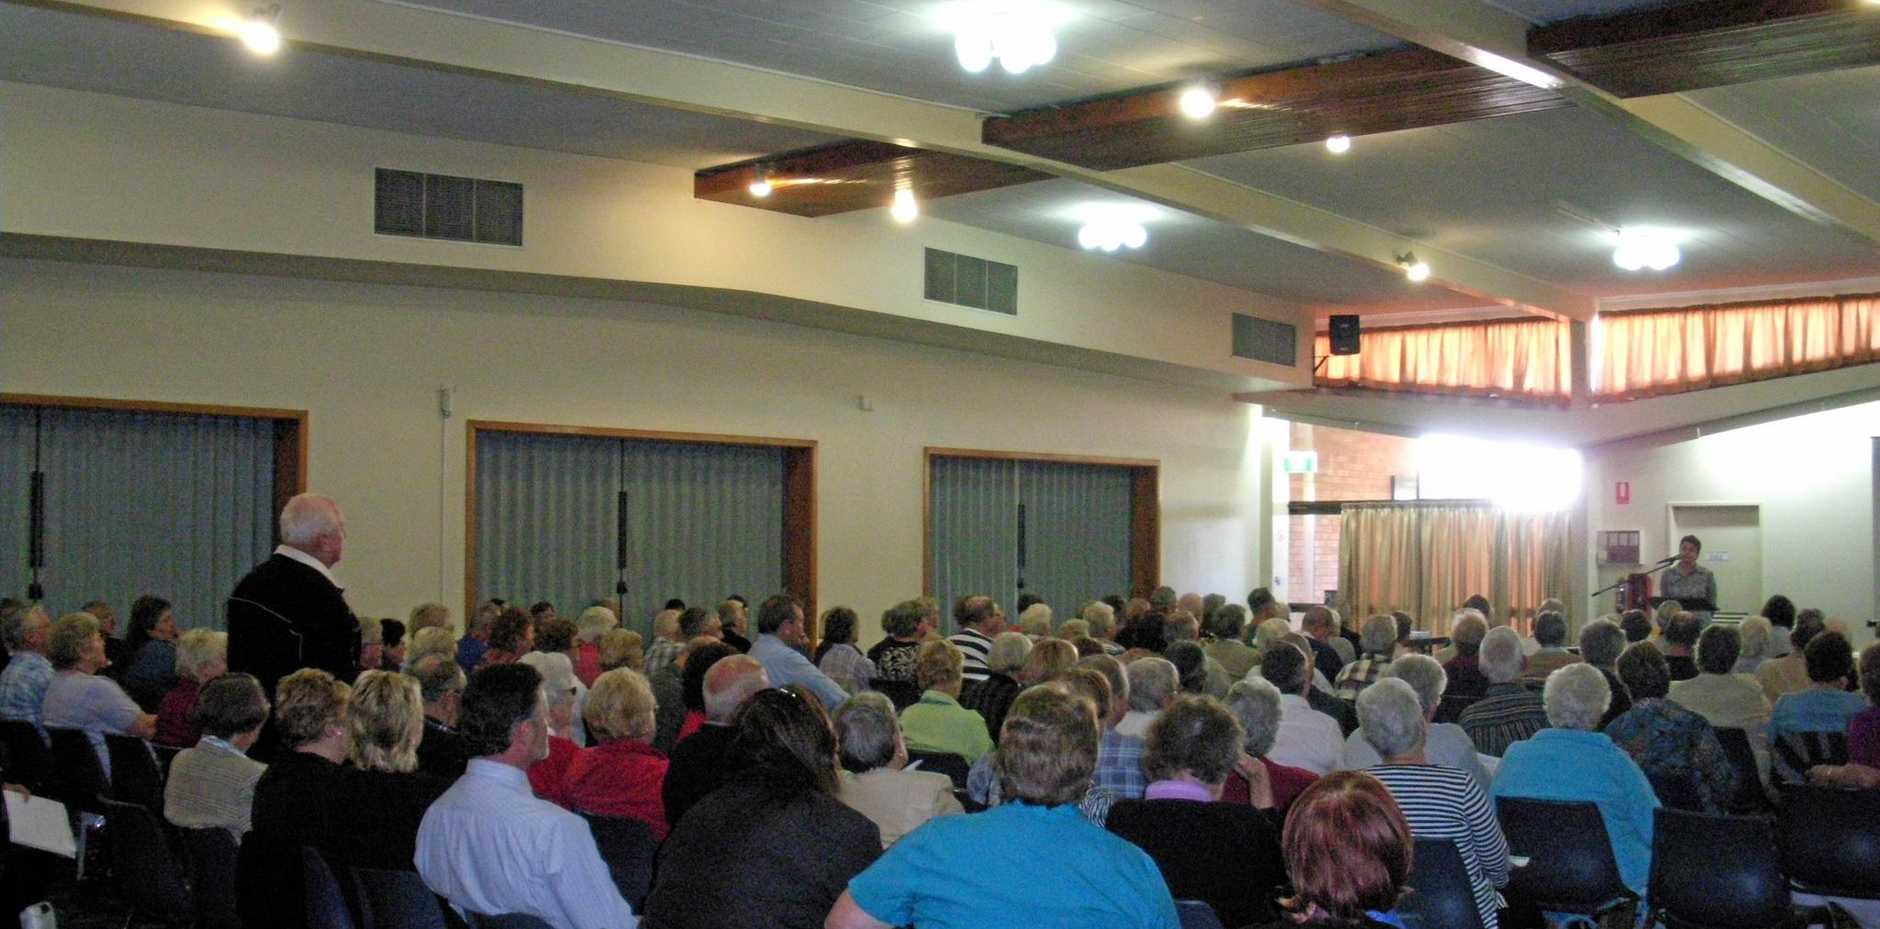 STAY UP TO DATE: Topics covered at the Seniors Forum will include home support, changes to MyAgedCare and services offered via the Public Trustee.